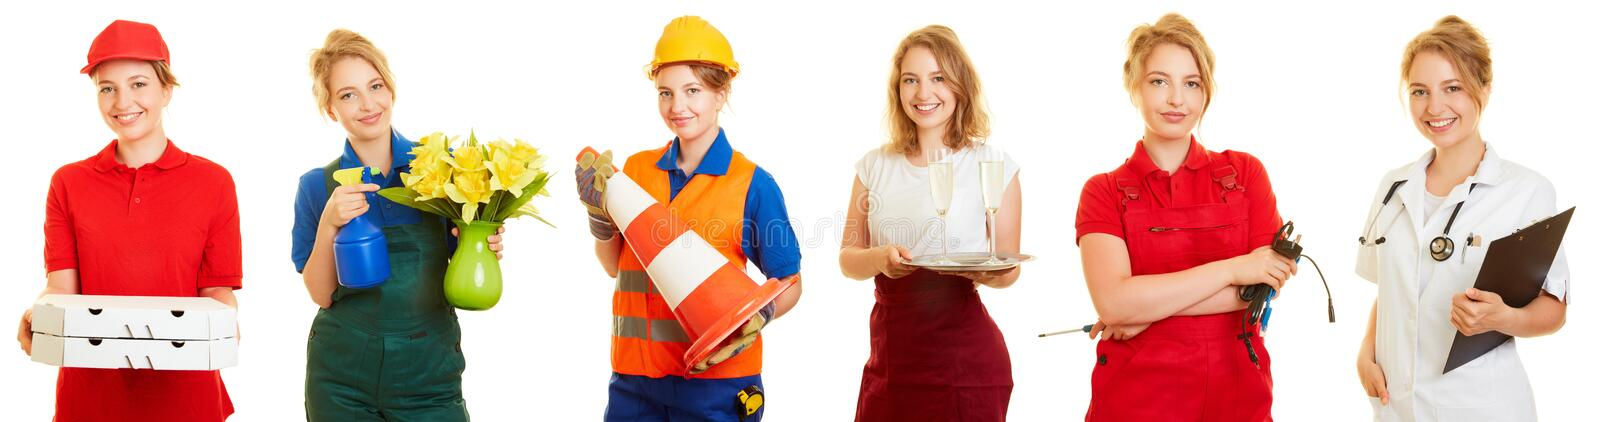 Woman in different professions as a side job stock photo